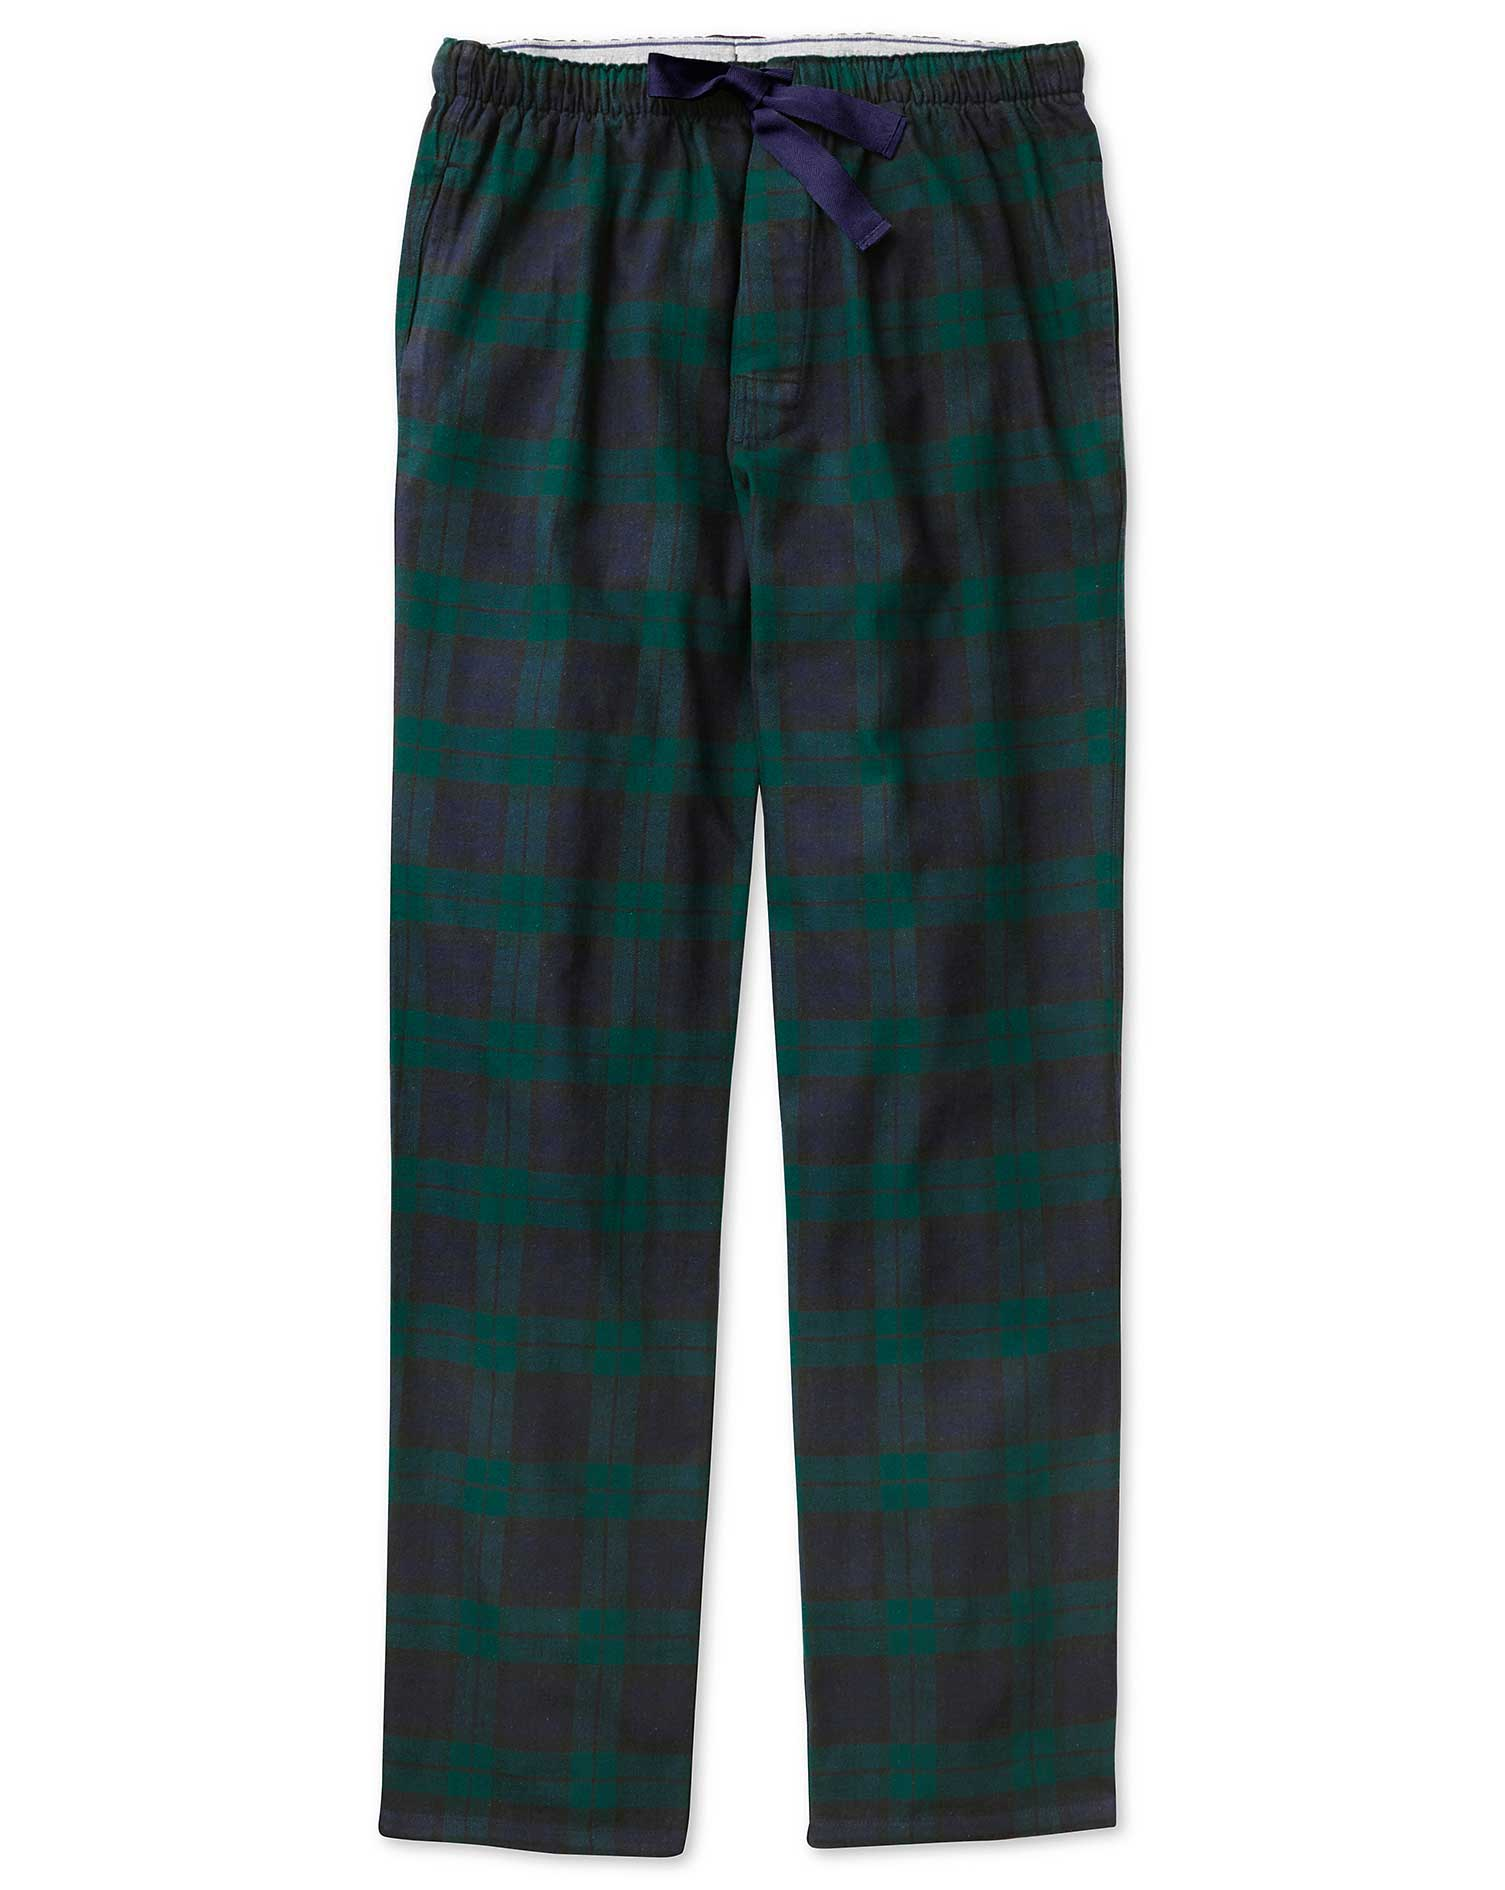 Navy and Green Check Brushed Cotton Pyjama Trousers Size XL by Charles Tyrwhitt